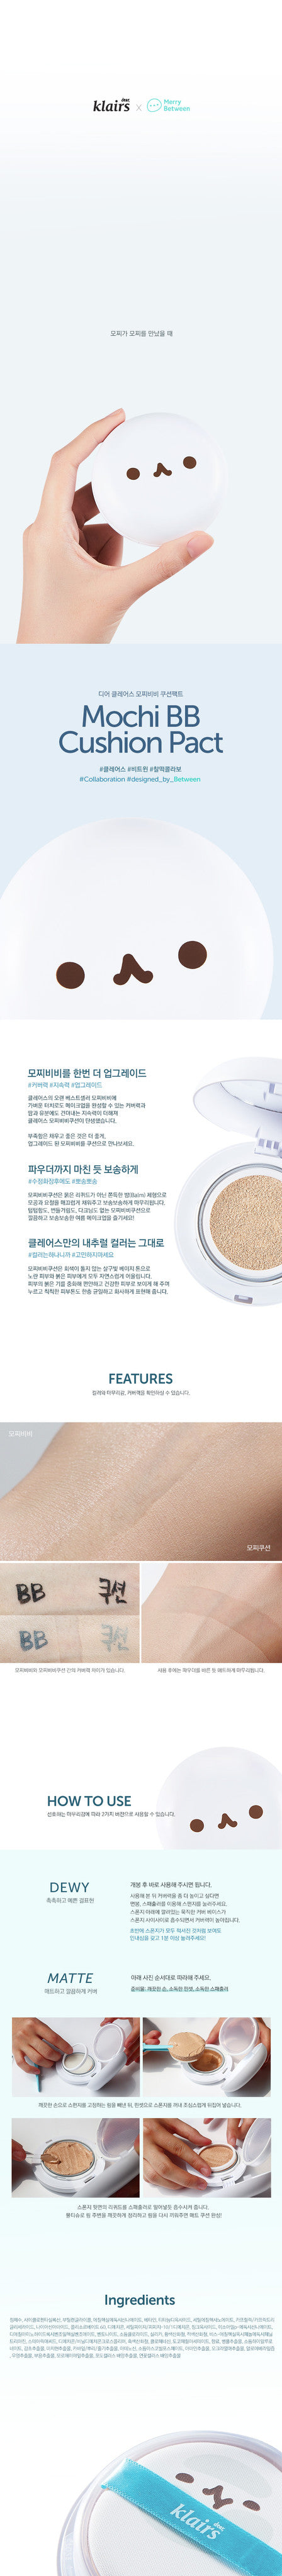 Image result for klairs mochi bb cushion